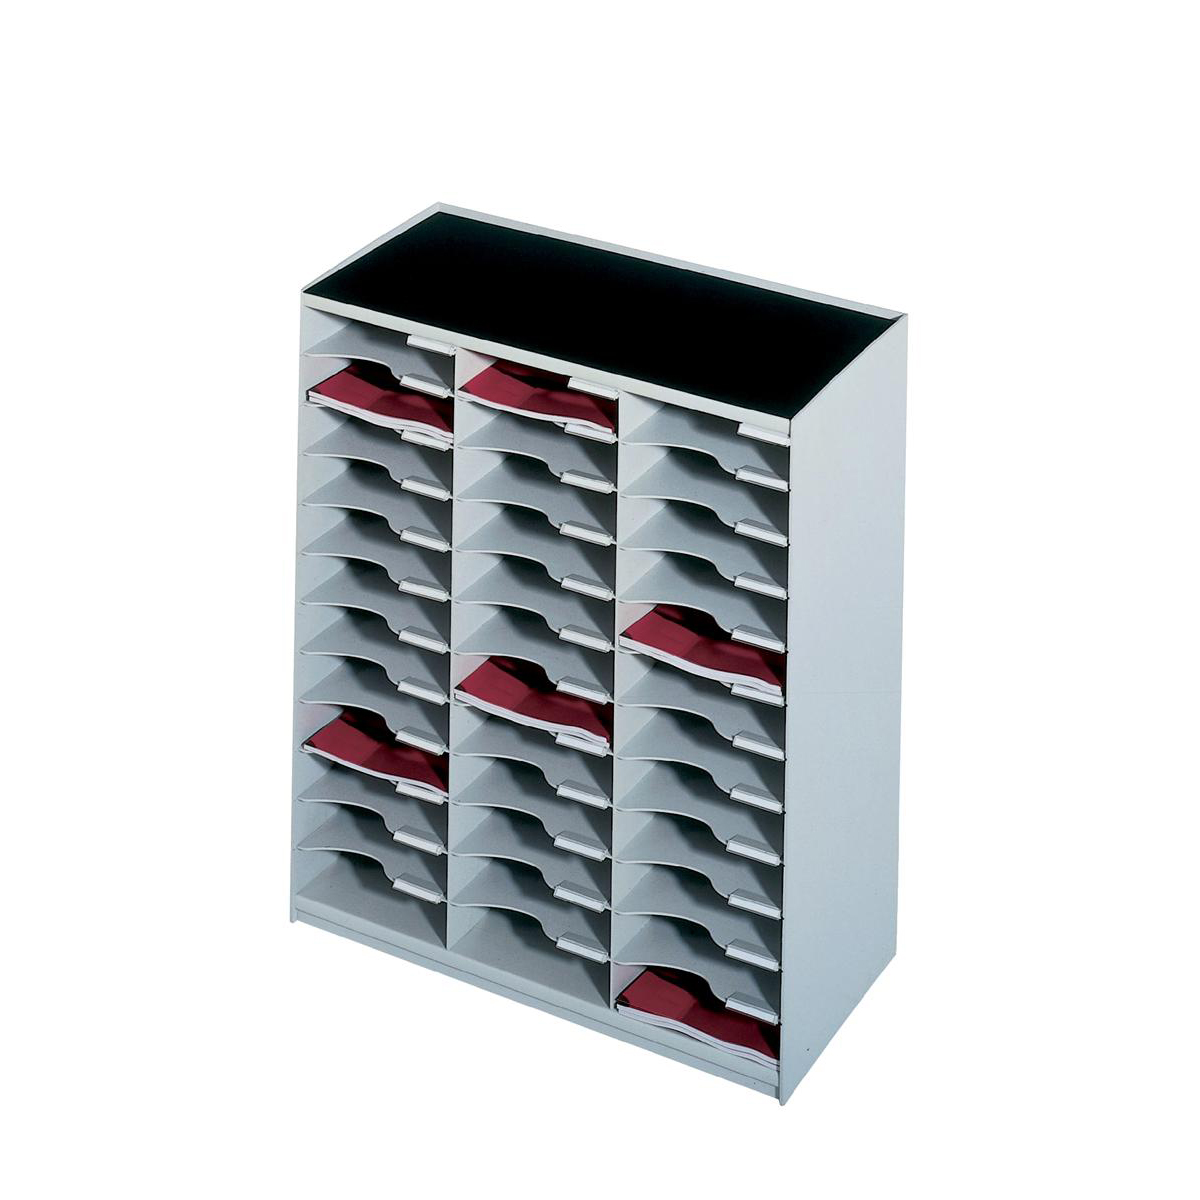 Post Boxes Paperflow Modulodoc Mailsorter Plastic Stackable 36x A4 Compartments W674xD308xH791mm Grey Ref 80302